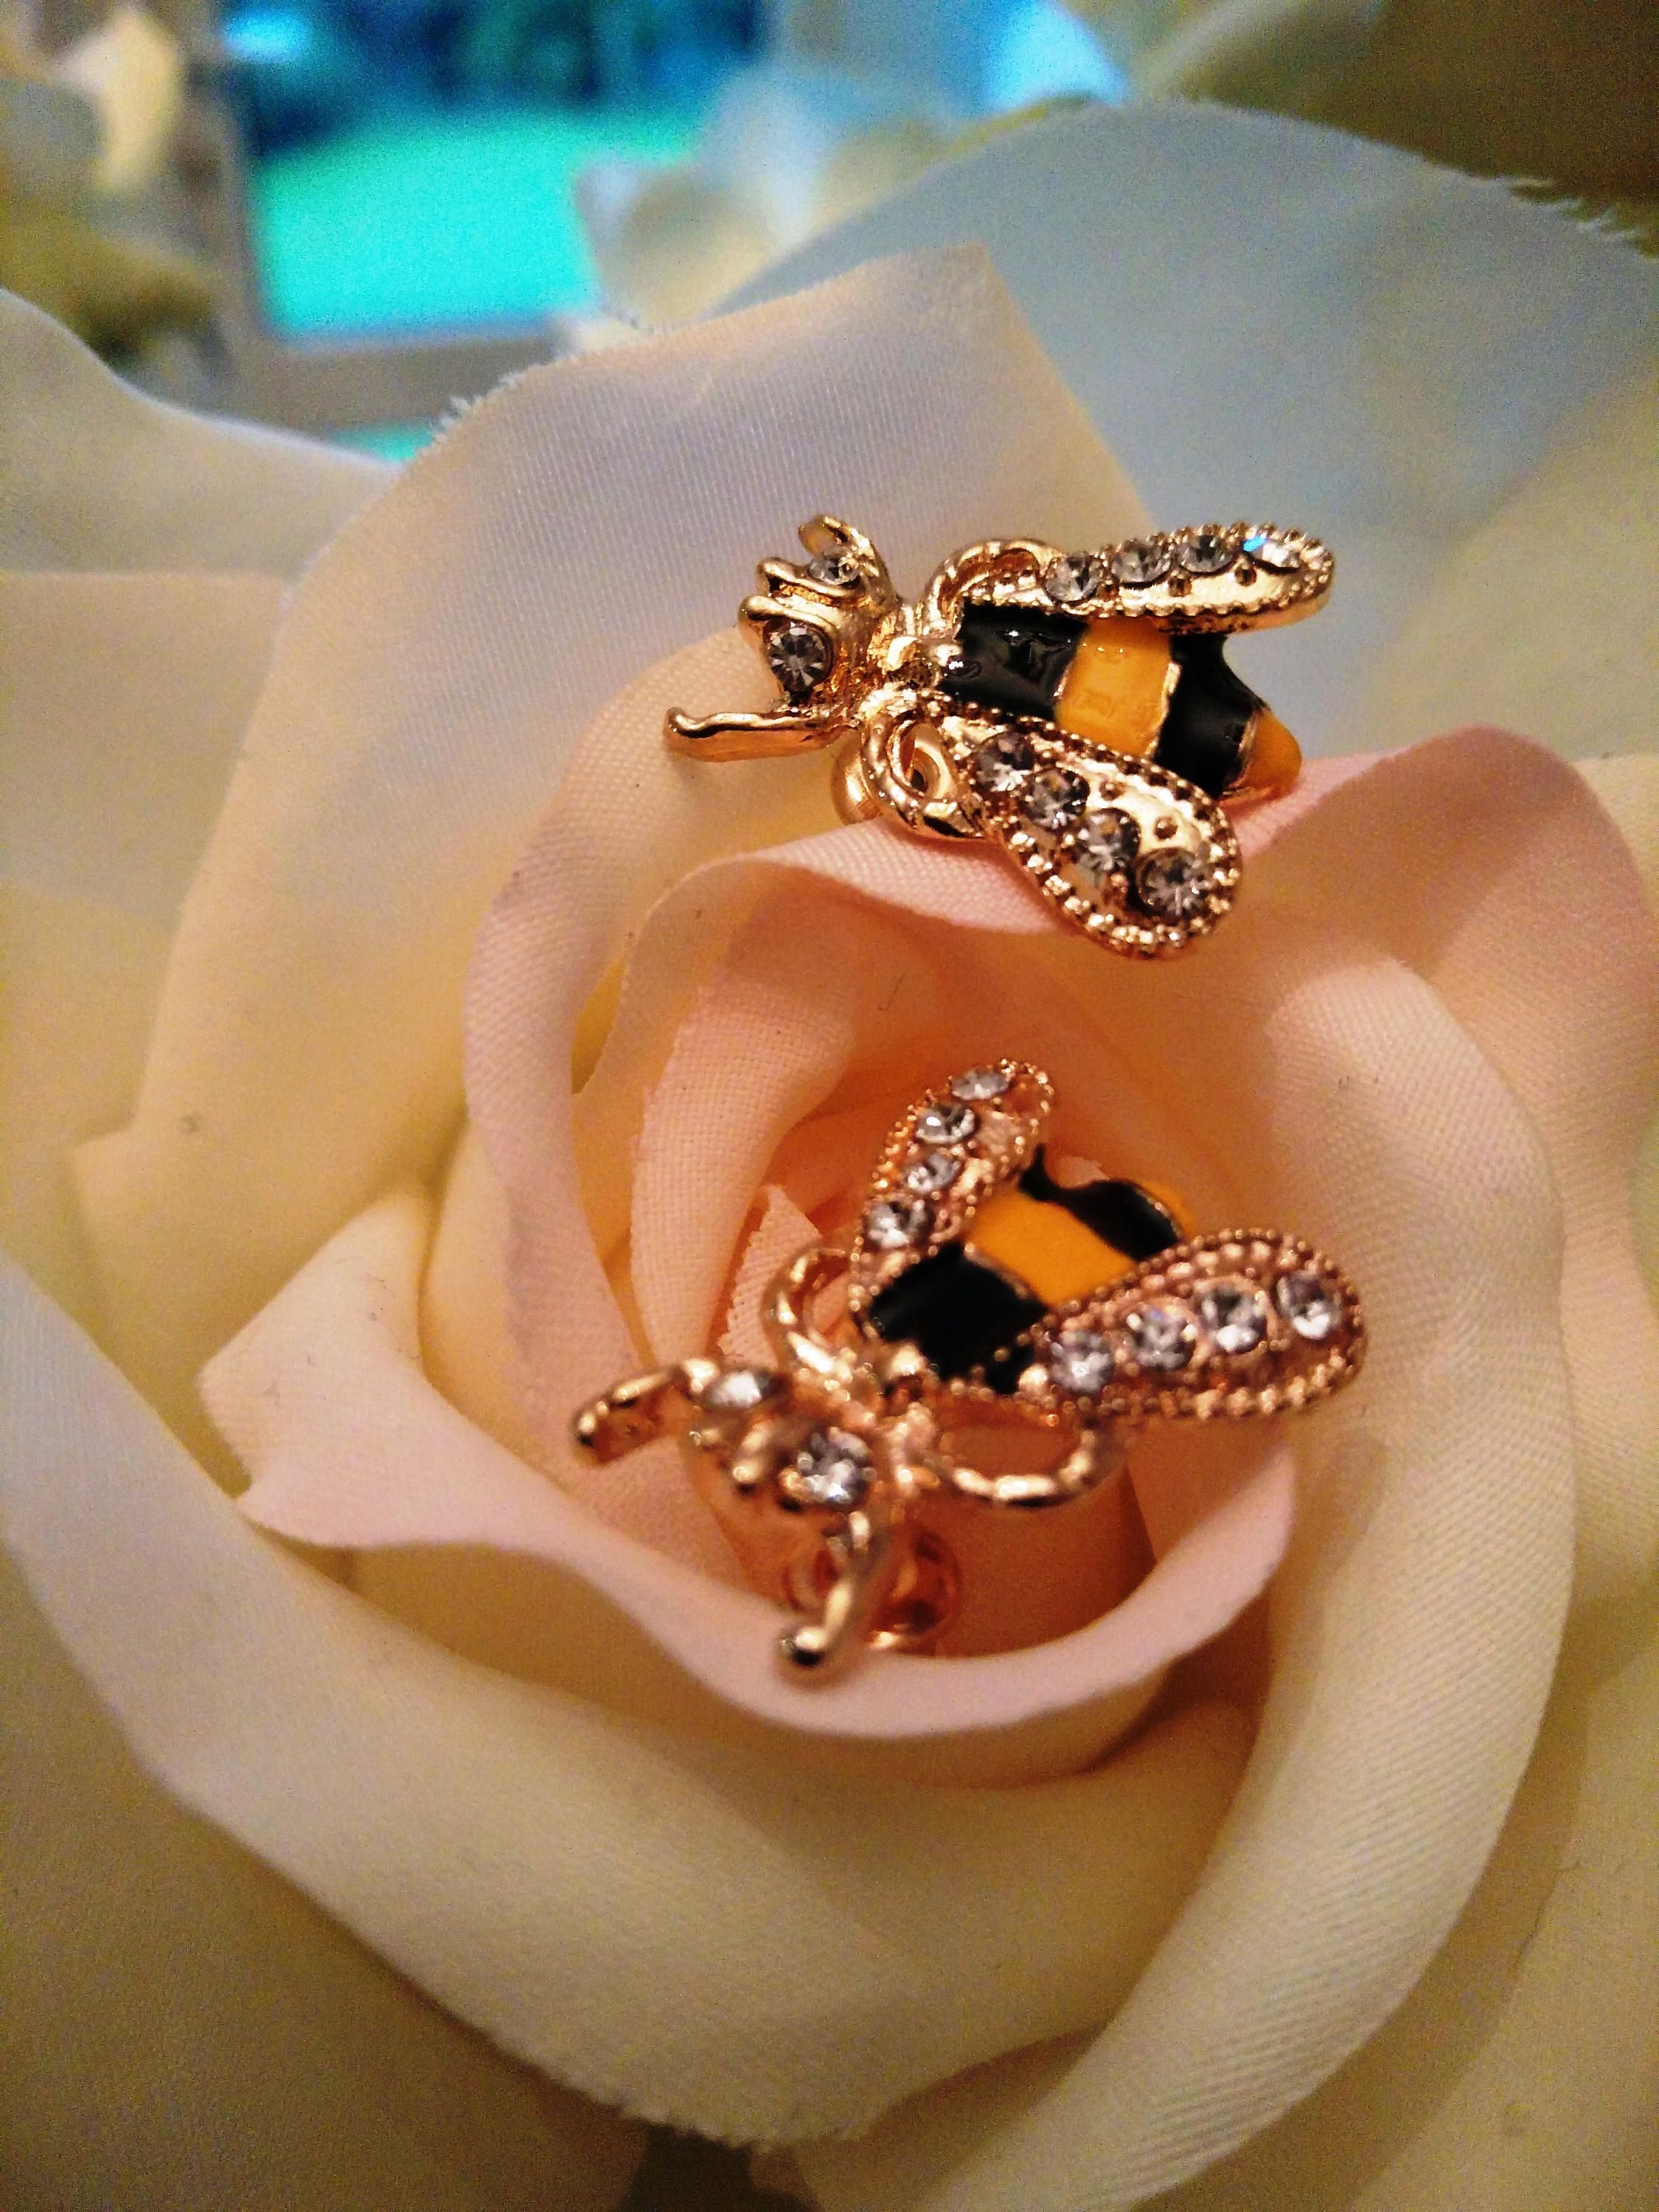 insect kawaii earring gift p fullxfull earrings bee small gold oiib for flying her colour il cute bumble stud jewellery